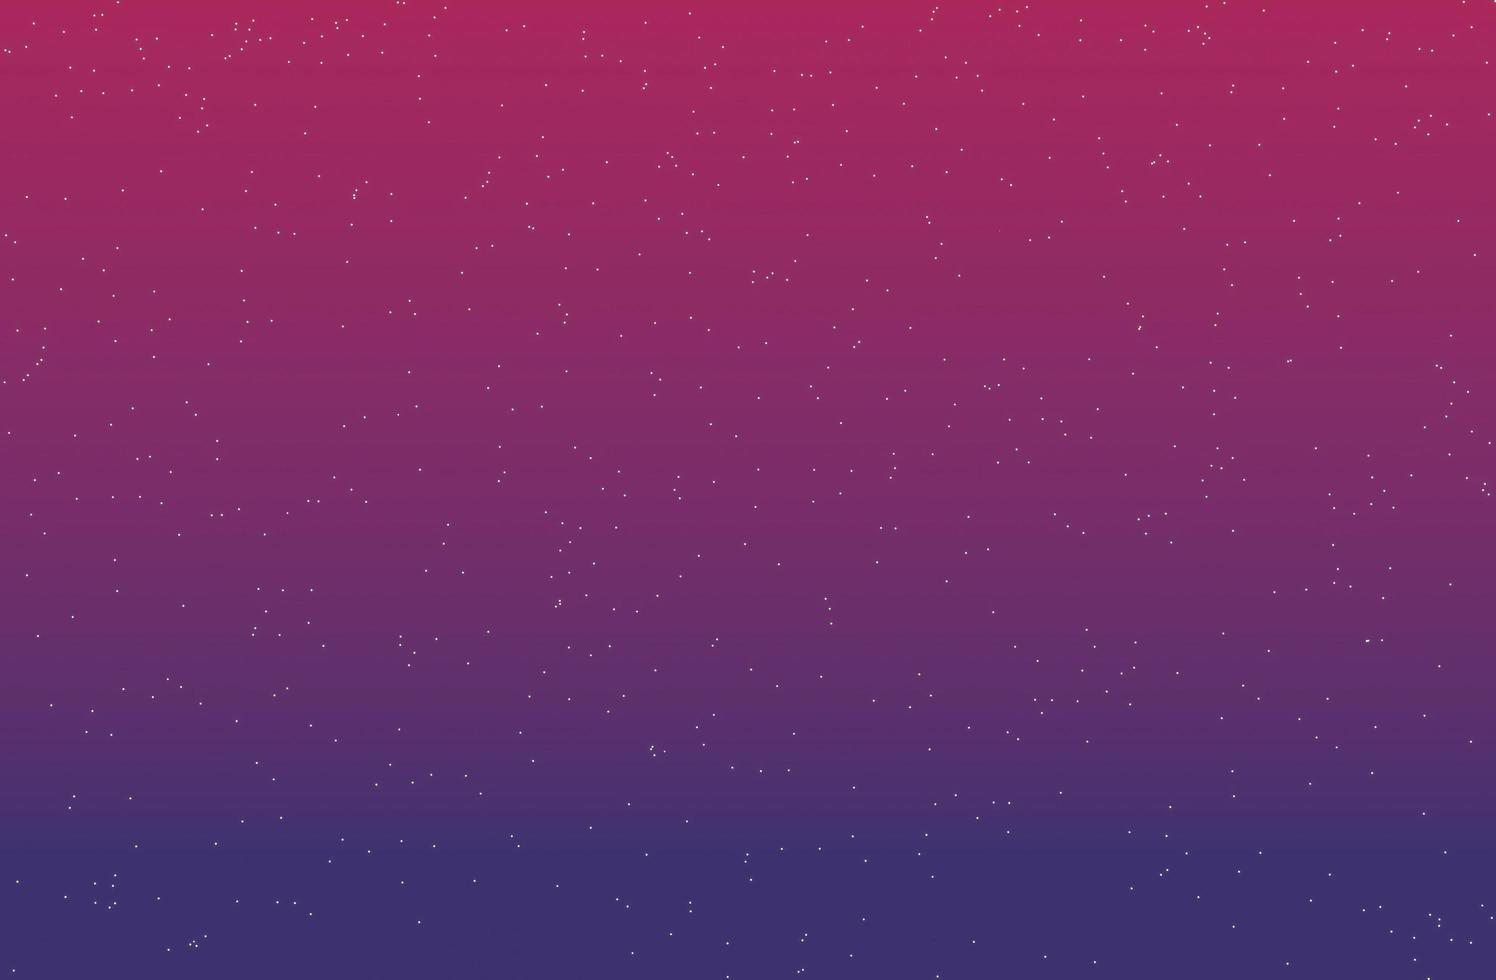 Gradient background with stars  photo